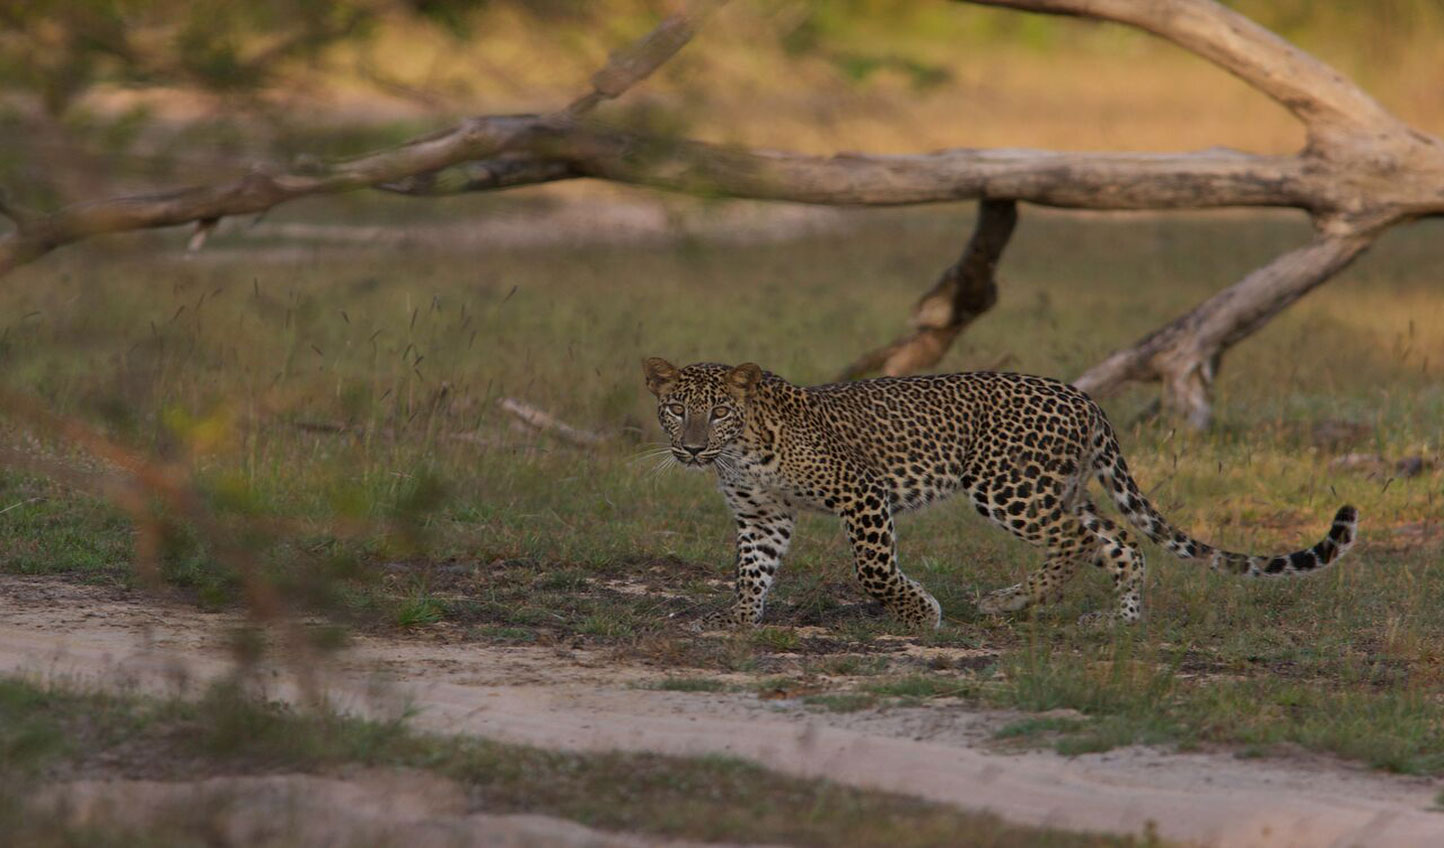 A Leopard on the hunt